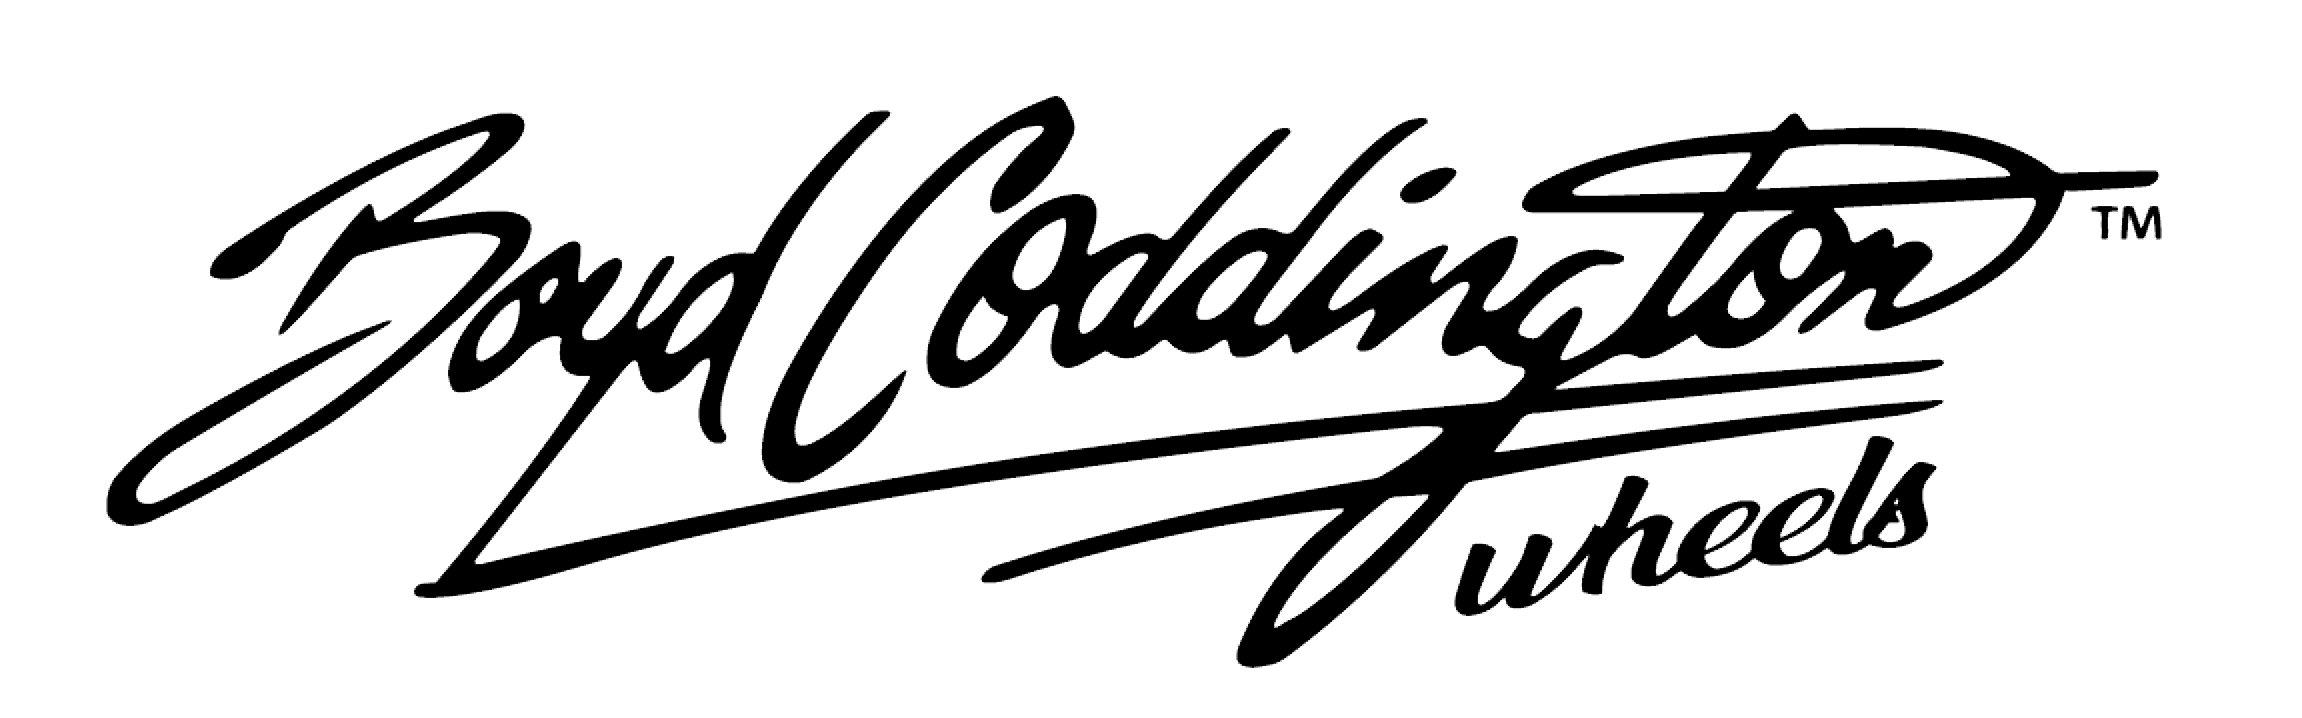 CODDINGTON LOGO MAIN